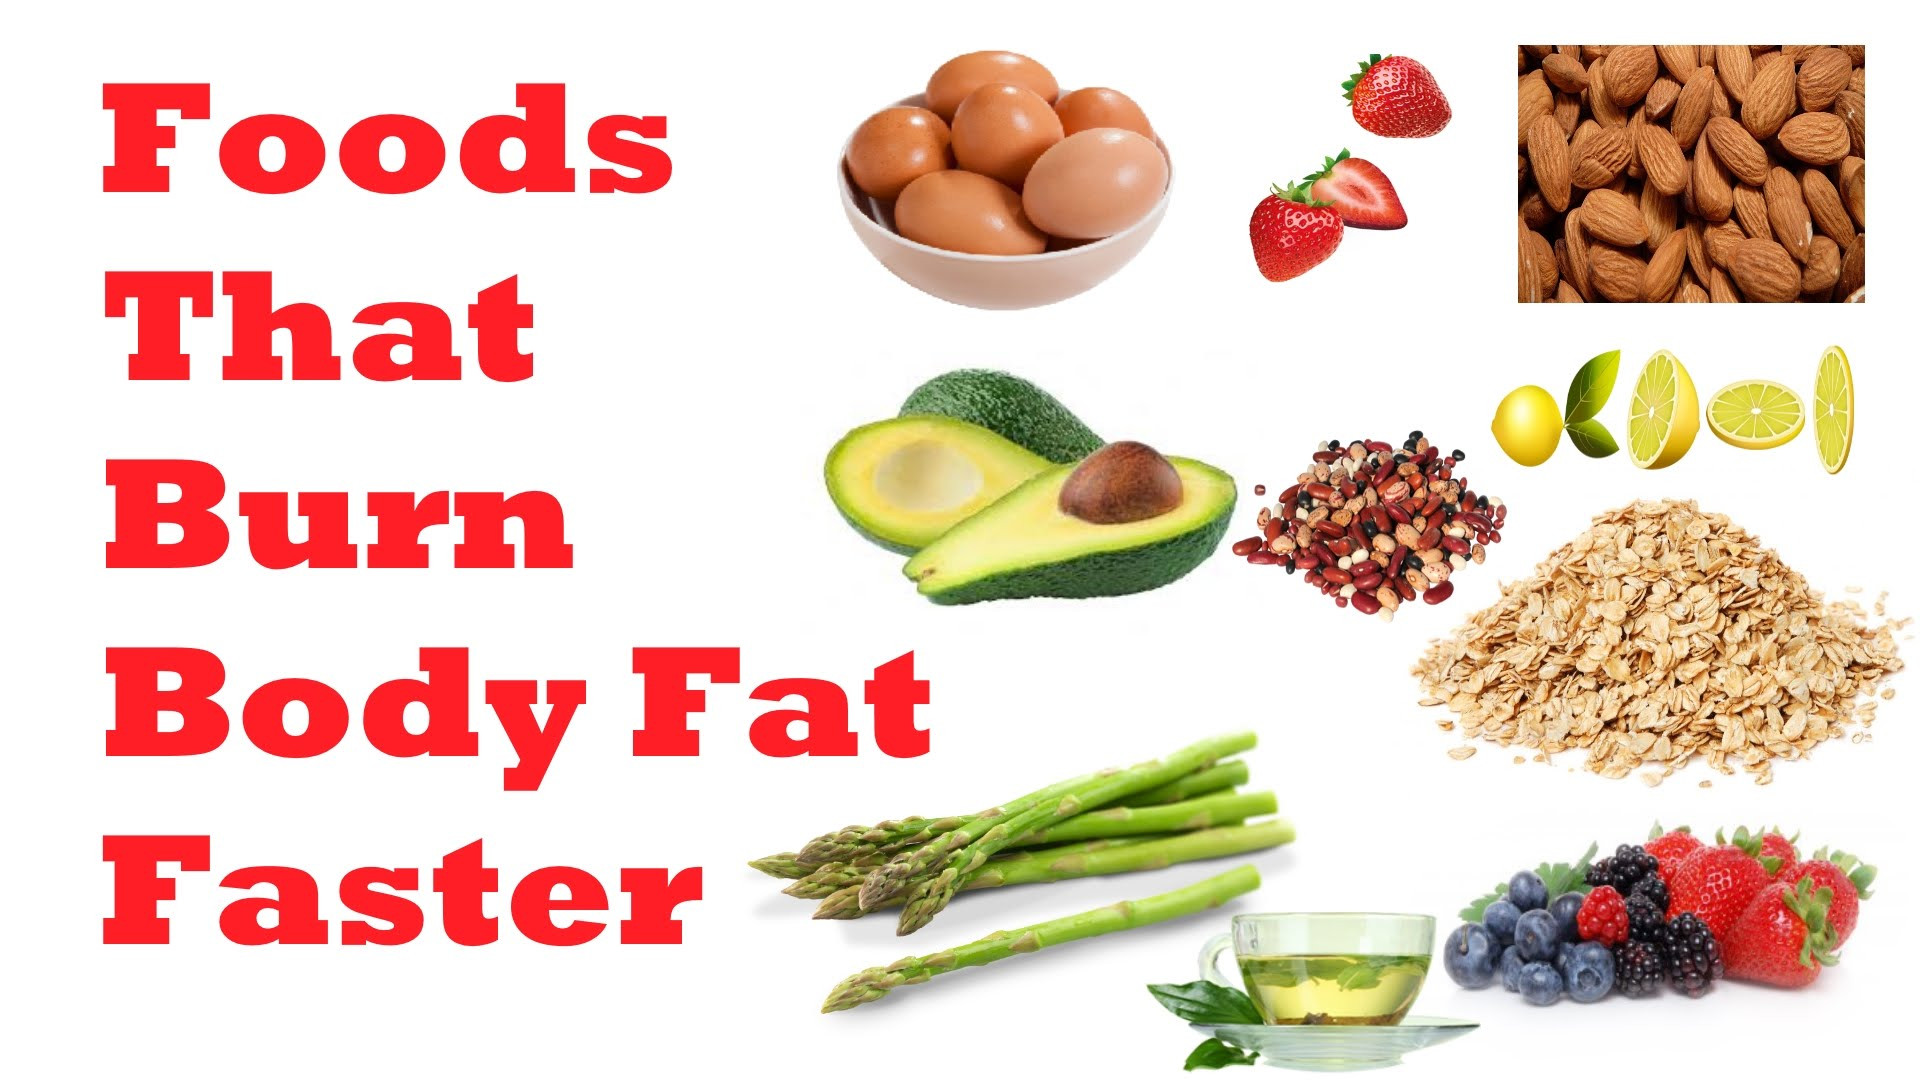 Fat Burning Foods Losing Weight 10 Pounds  10 Foods that Help to lose weight InformationPeg